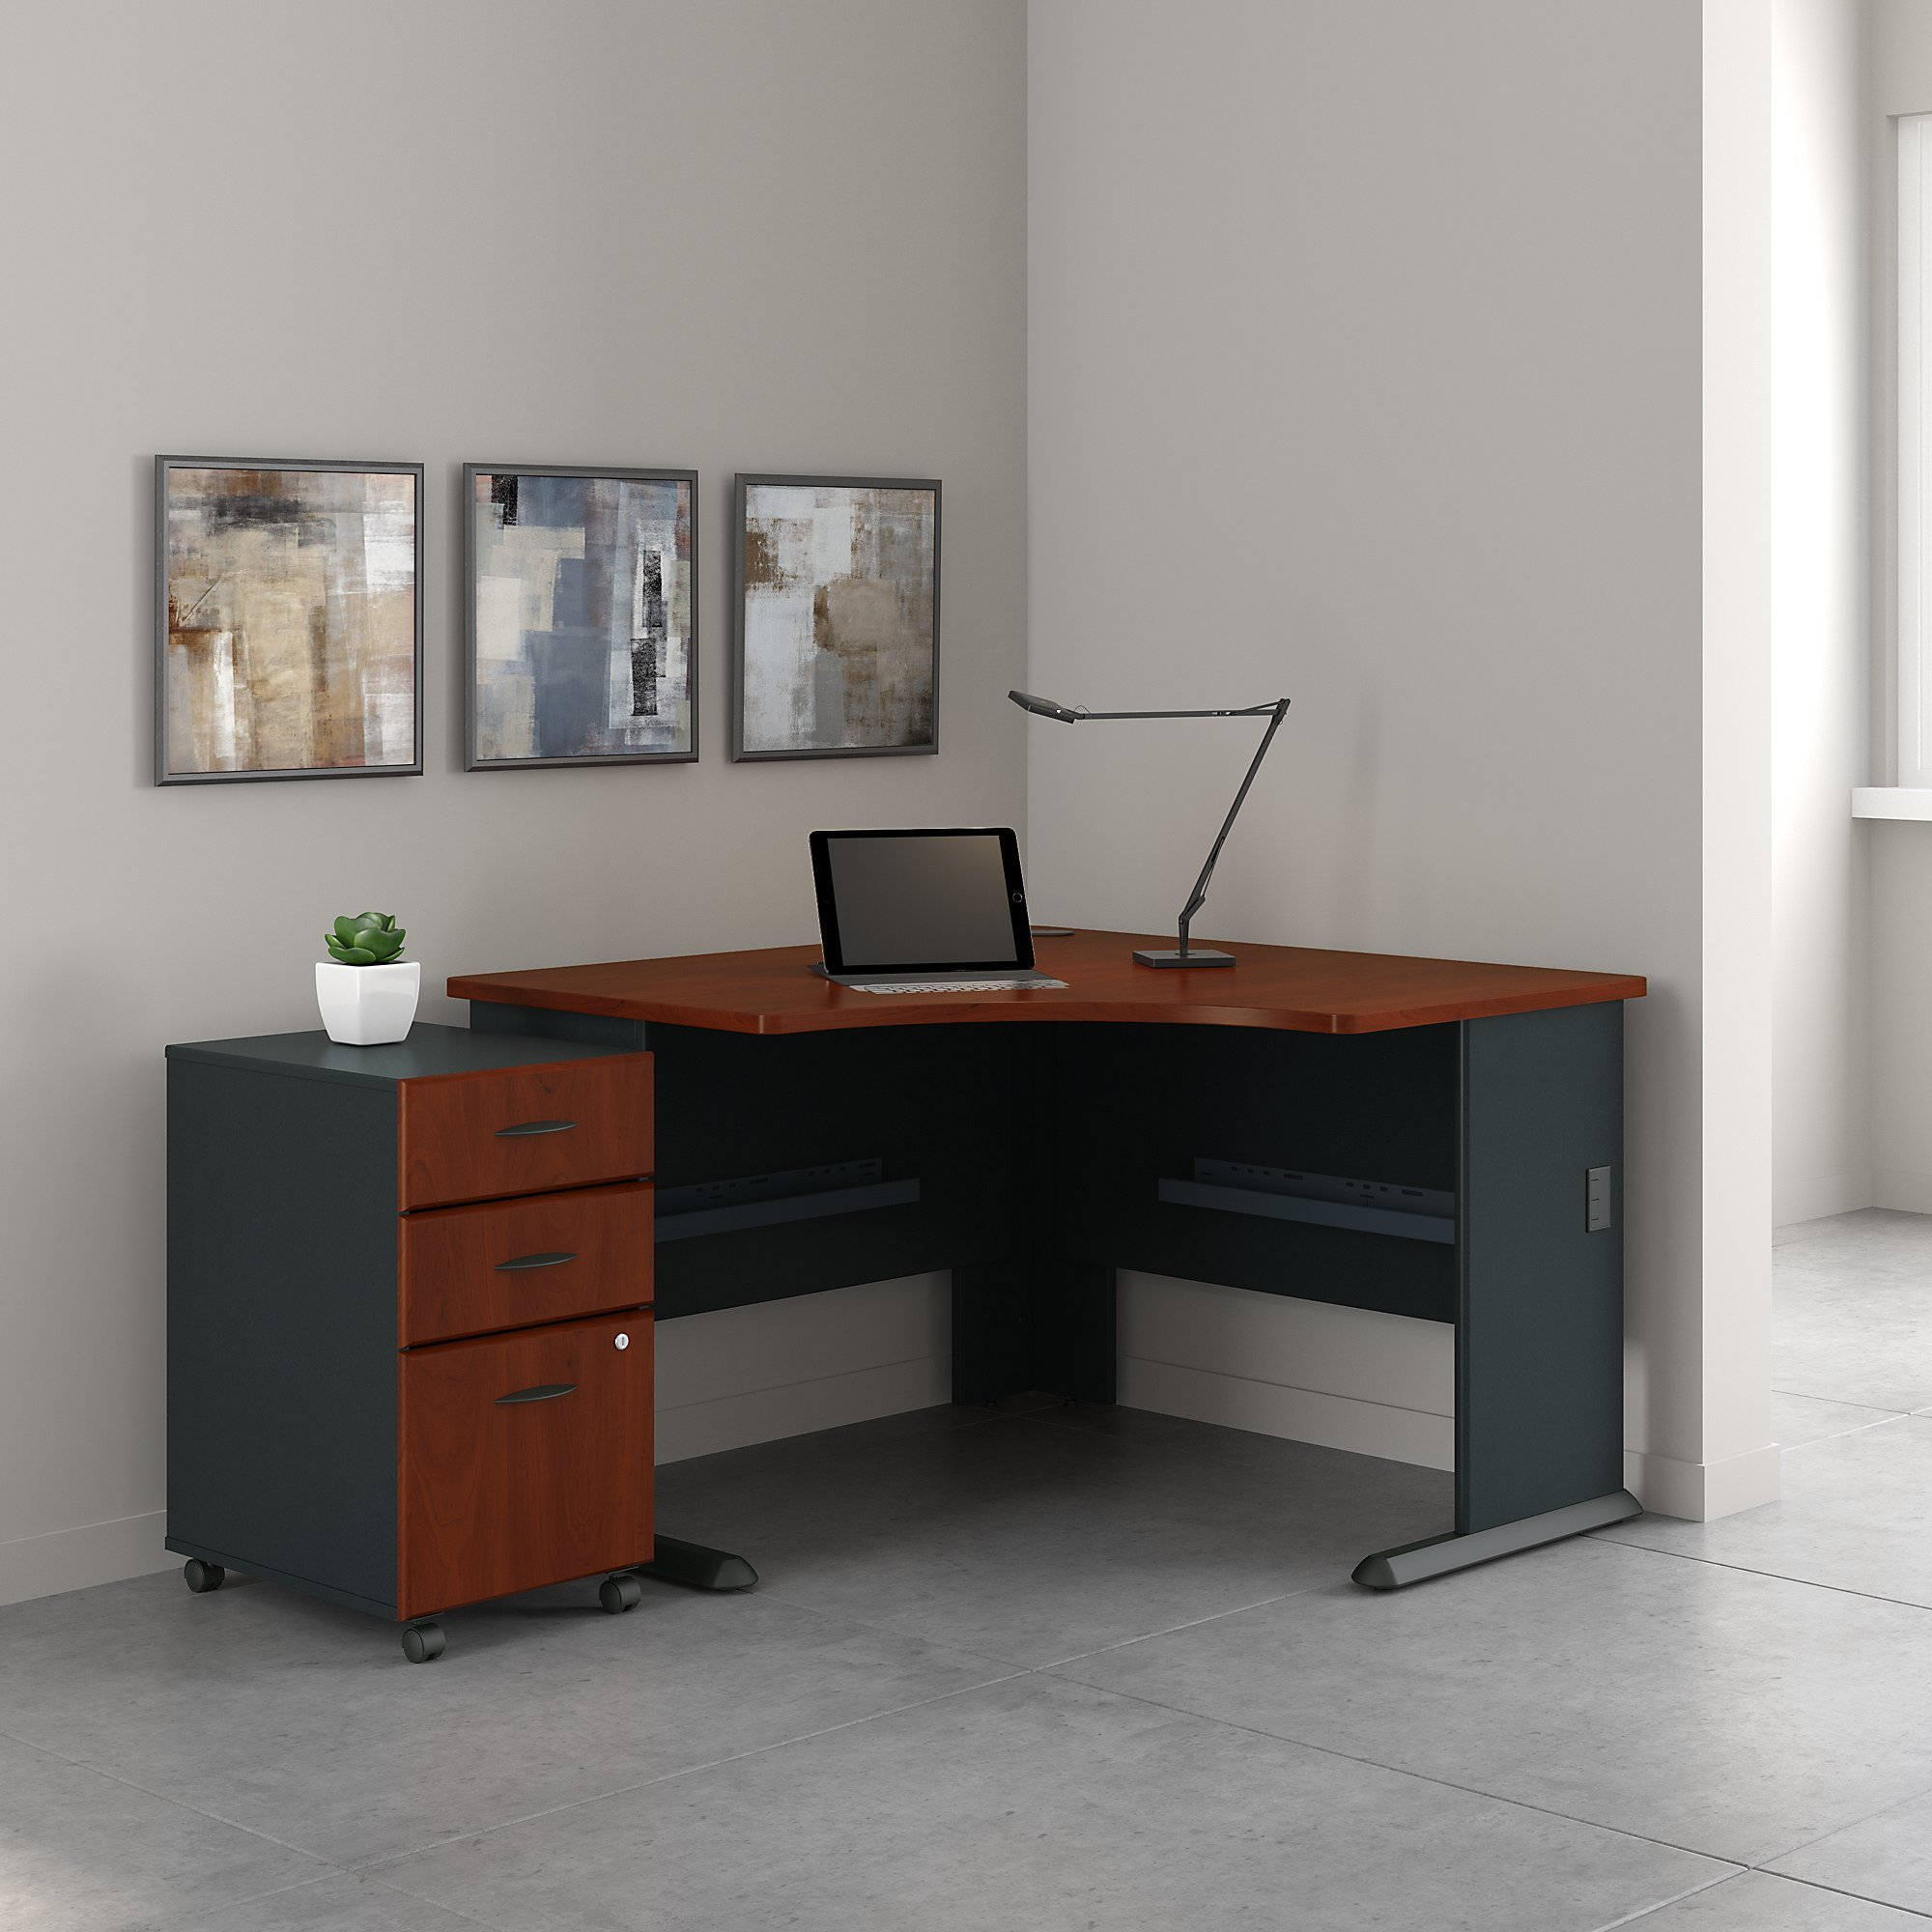 Bush Business Furniture Series A 48W Corner Desk with Mobile File Cabinet in Hansen Cherry and Galaxy by Bush Business Furniture